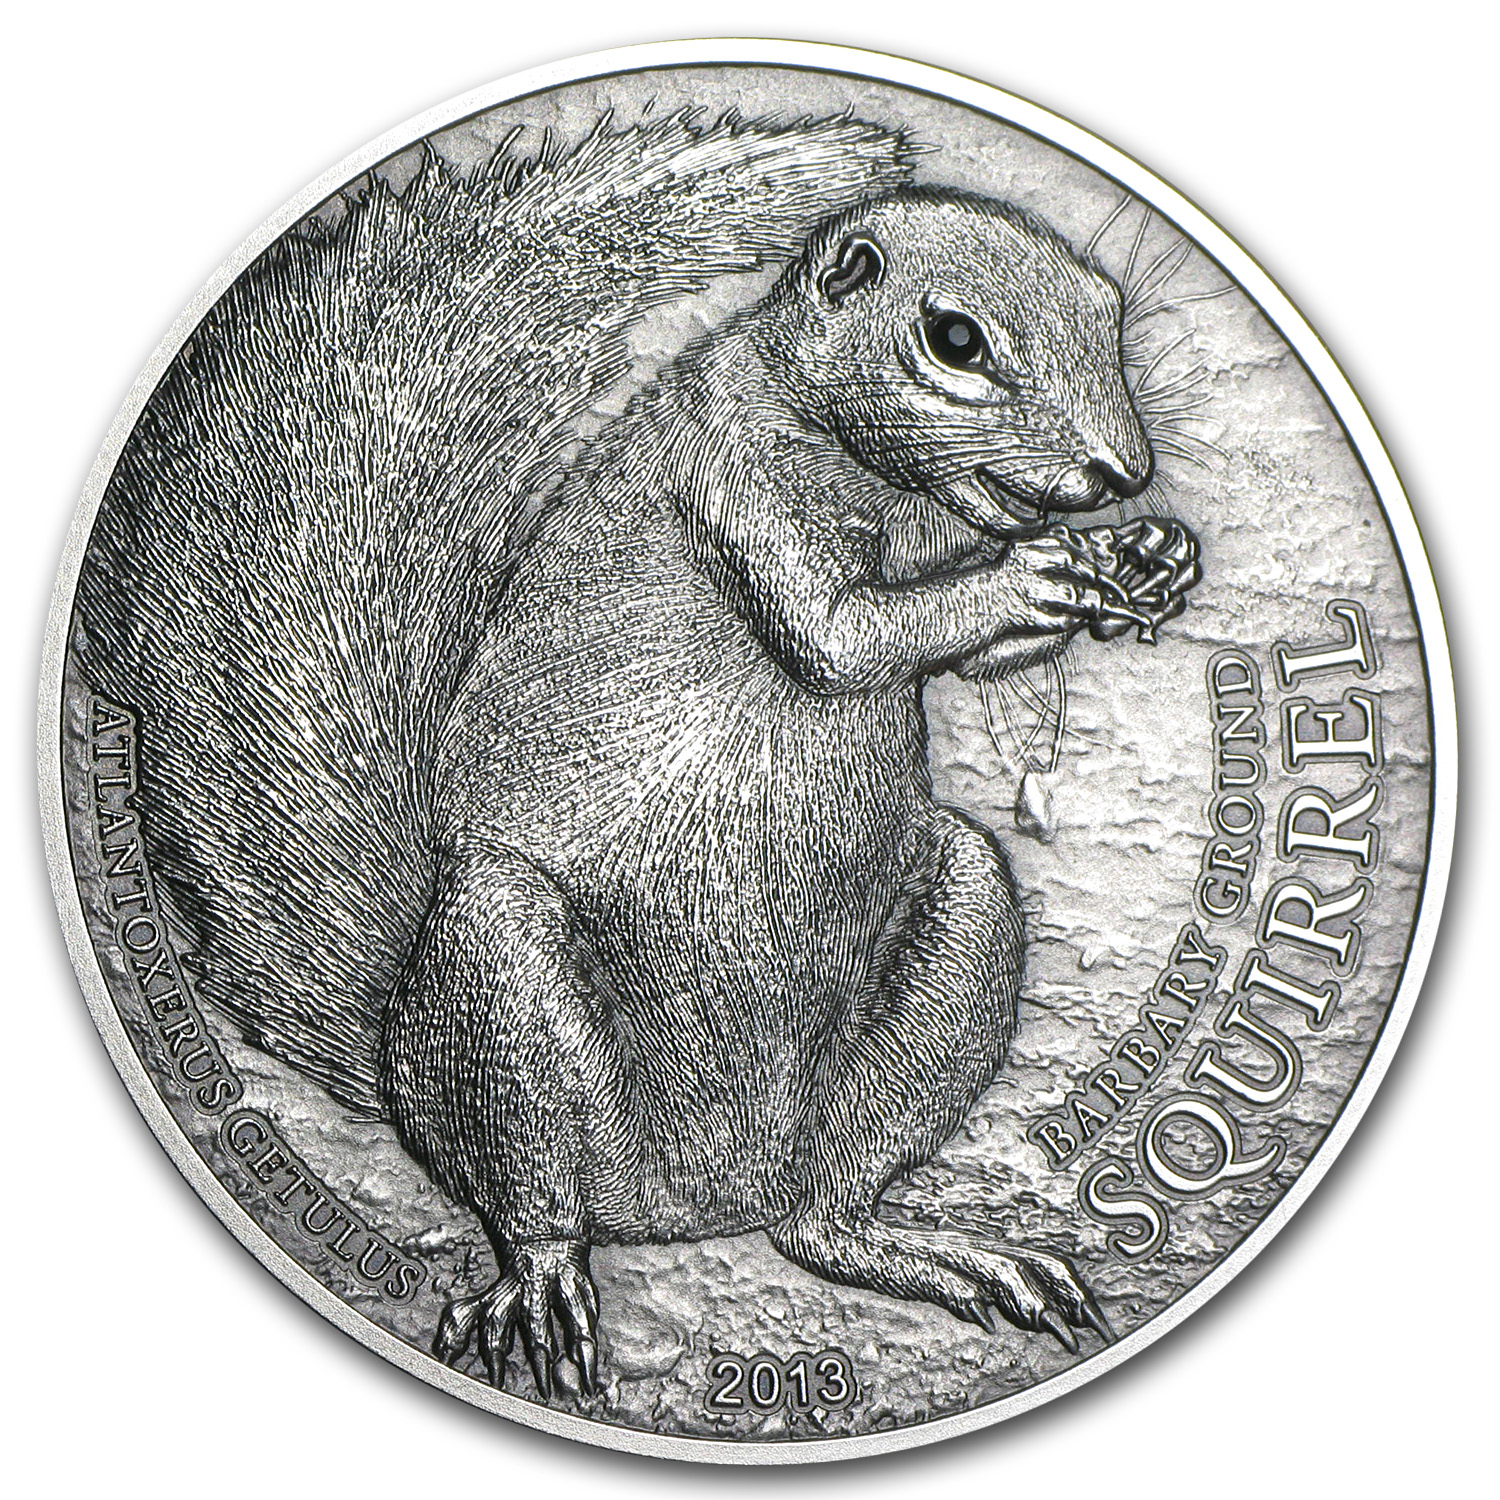 2013 Palau 1 oz Silver $5 Barbary Grnd Squirrel (Antique Finish)